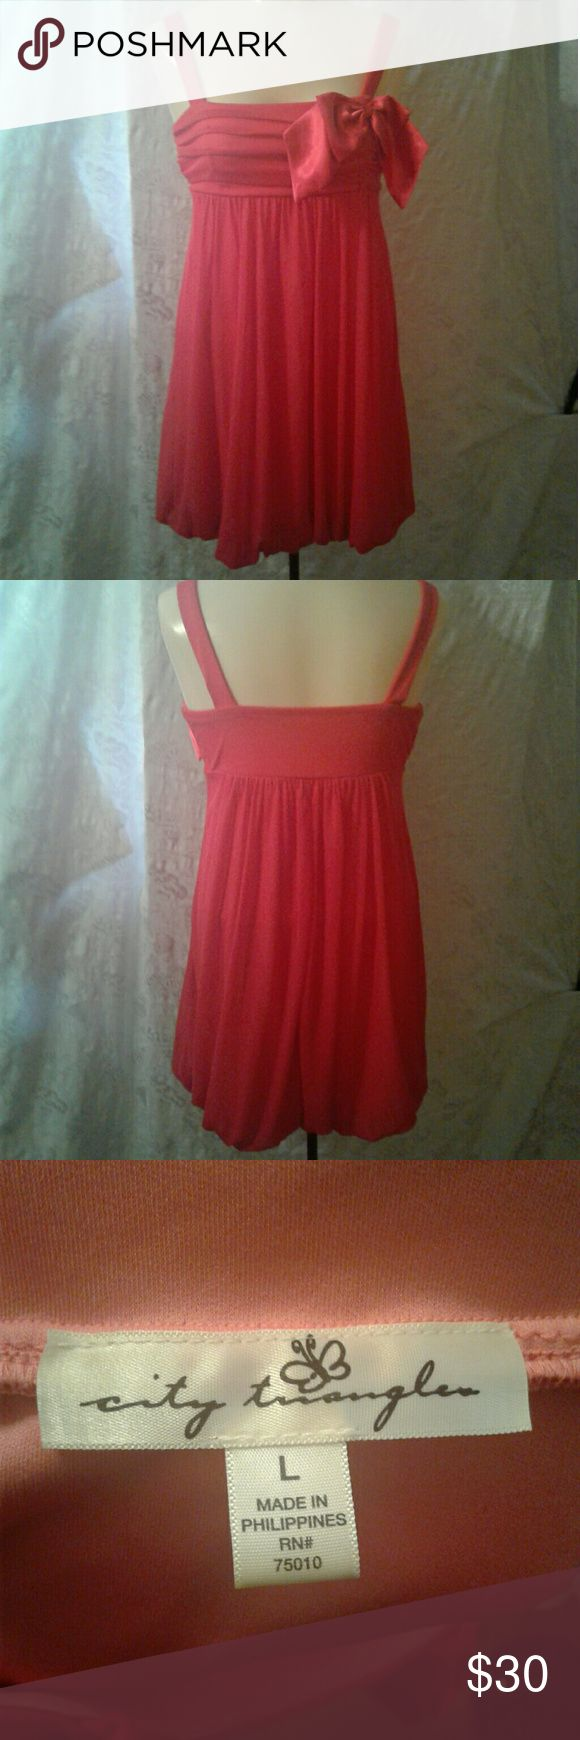 Sz Large pink dress City triangles size large pink occasion dress  Perfect for homecoming! Flawless EUC  From a smoke and pet free home  2 City Triangles Dresses